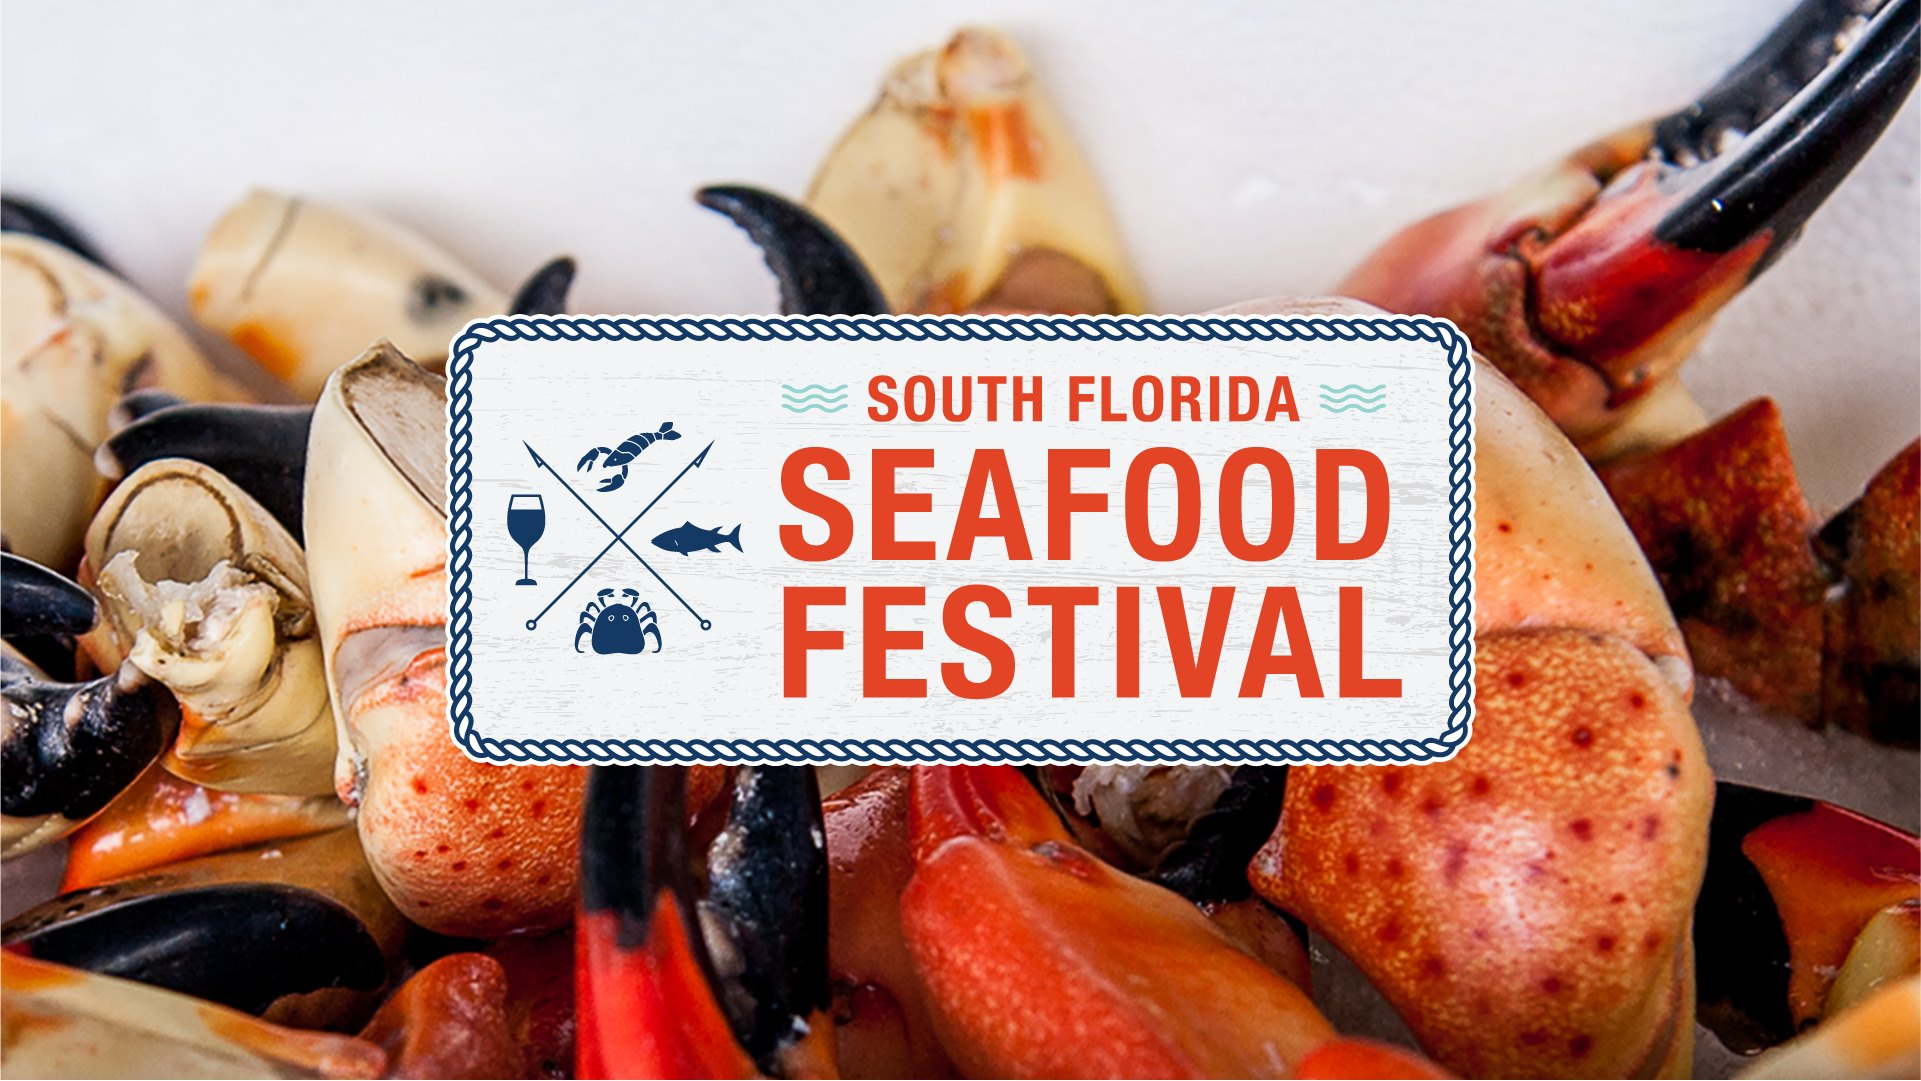 octobre south florida seafood festival stone crab fruits de mer que faire en octobre a miami attractions a miami bons plans miami bons plans floride tarifs réduits miami blog miami off road